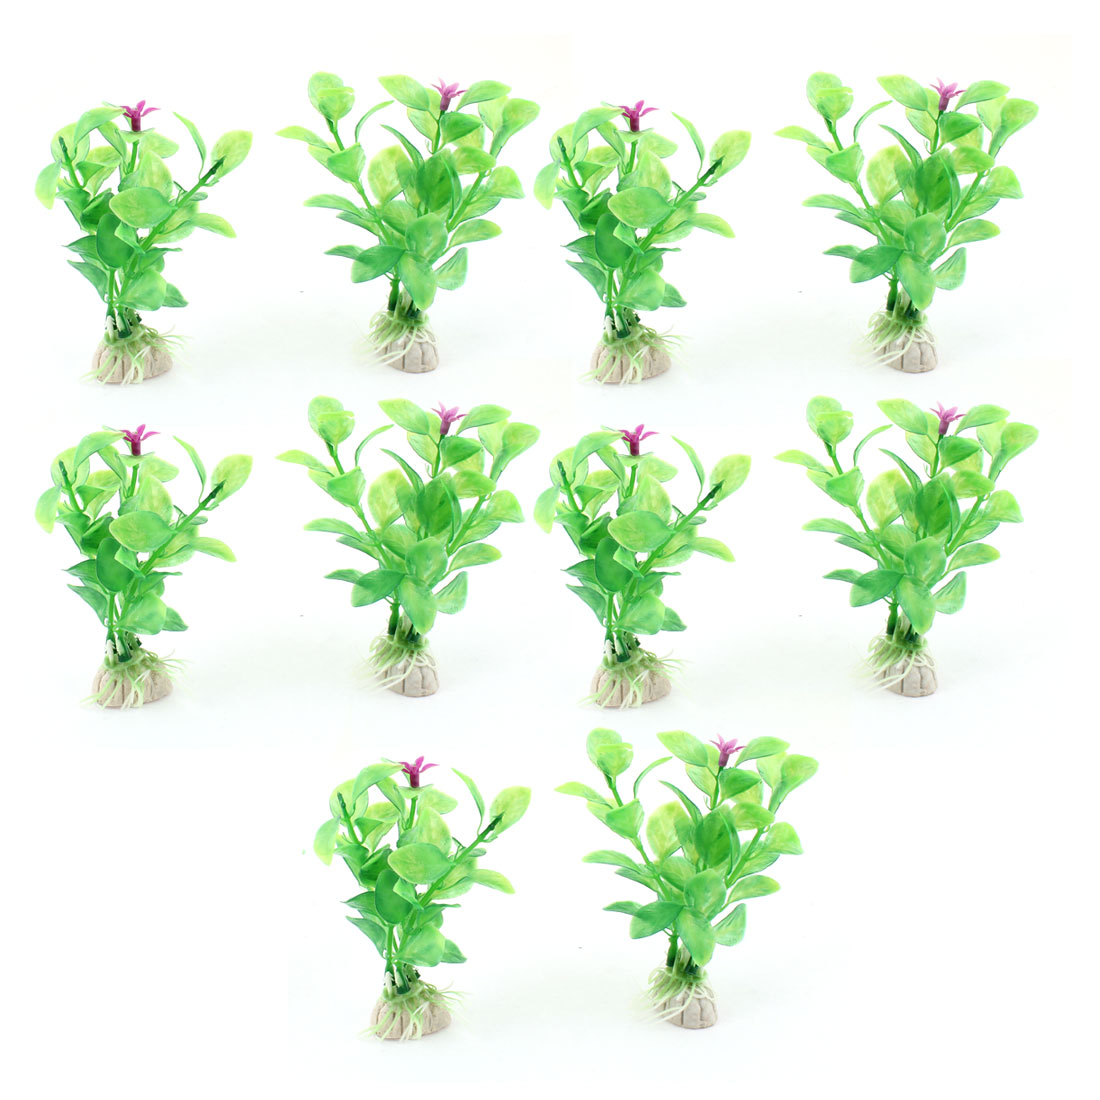 "10 Pcs 4.3"" Height Simulation Green Grass Plant Decor for Aquarium"